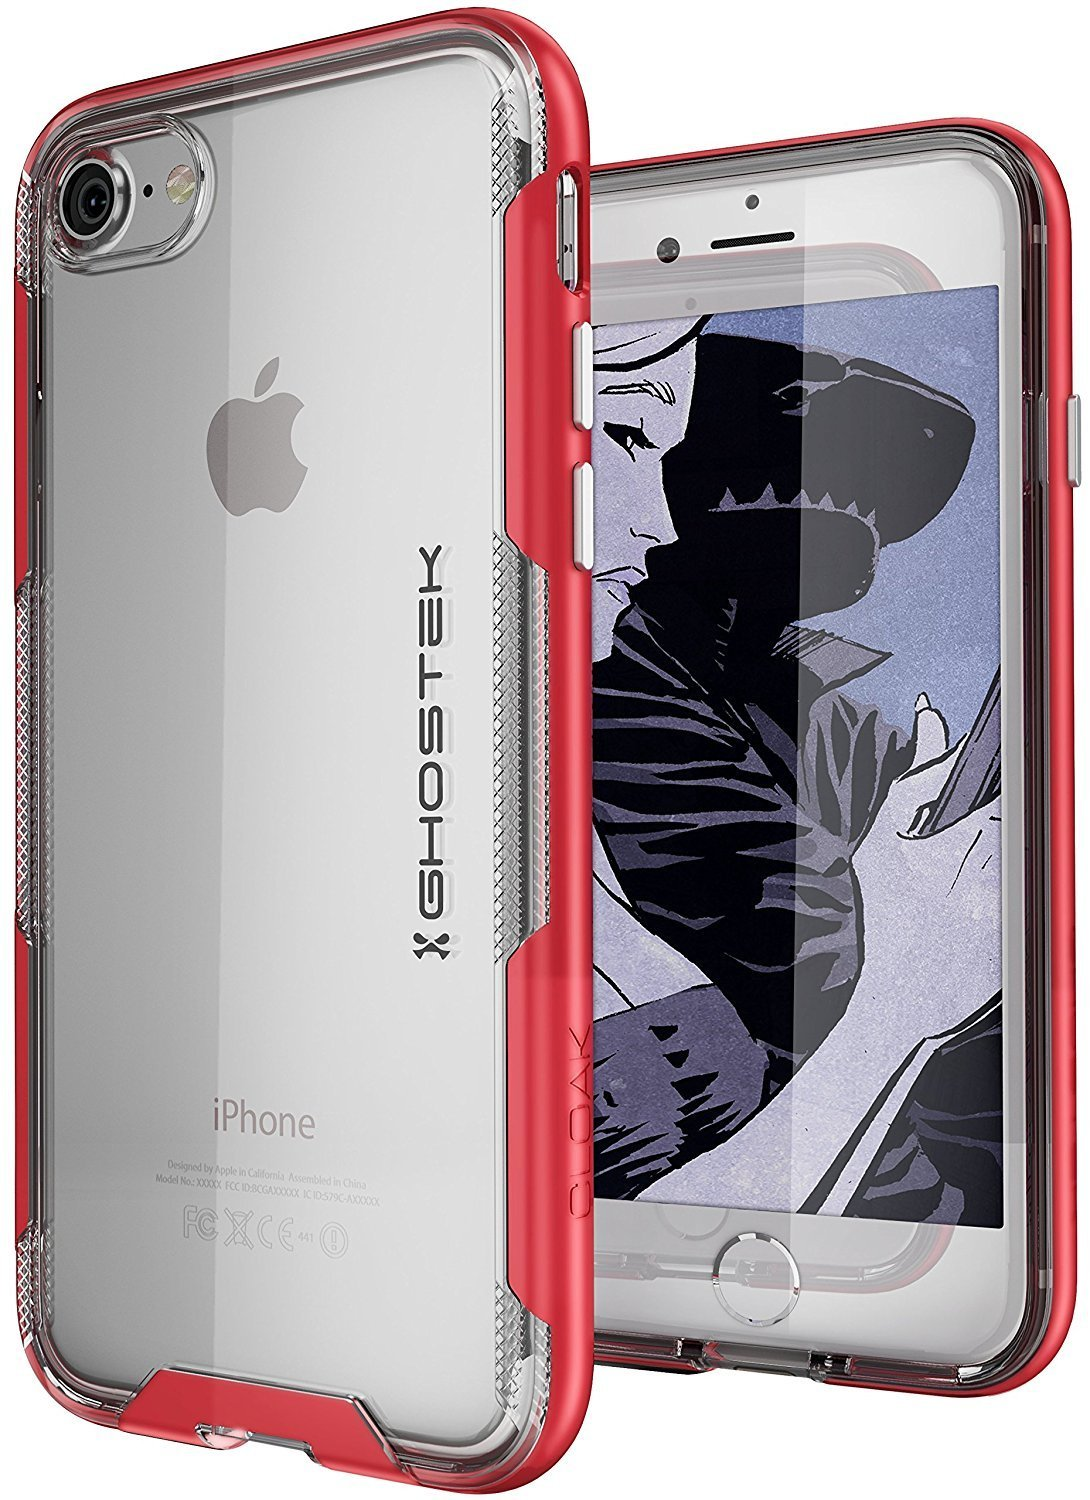 iPhone 7 Case, Ghostek Cloak 3 Series for iPhone 7 Clear Protective Case | Red